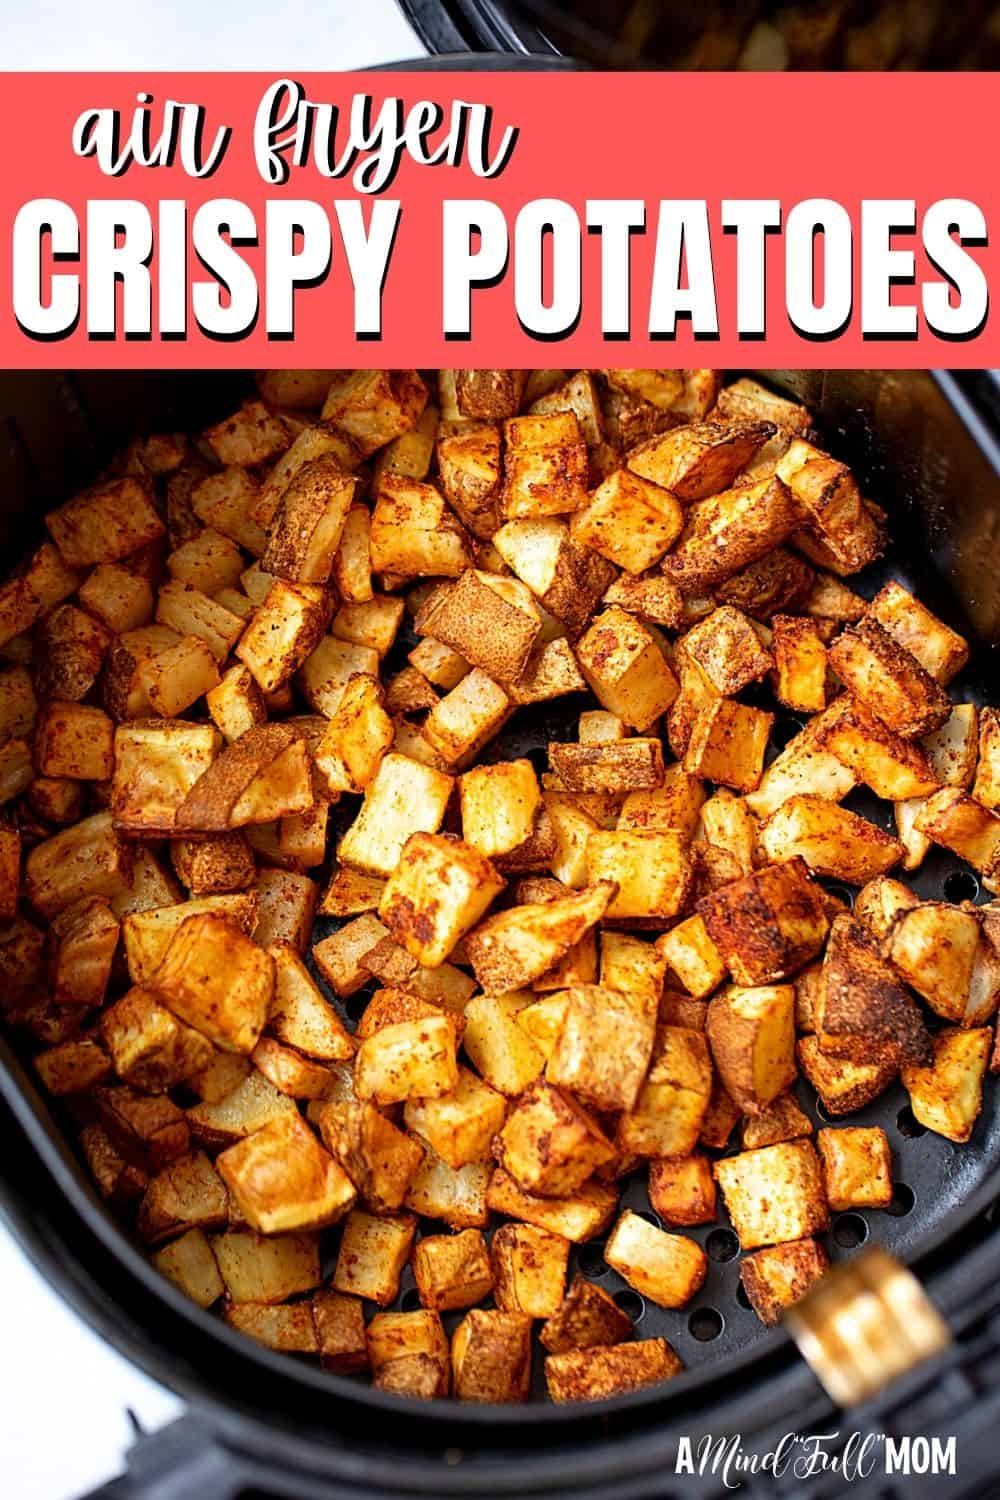 Crispy, crunchy, and tender inside, these low-fat Air Fryer Potatoes come together FAST--and keep the heat out of the kitchen!